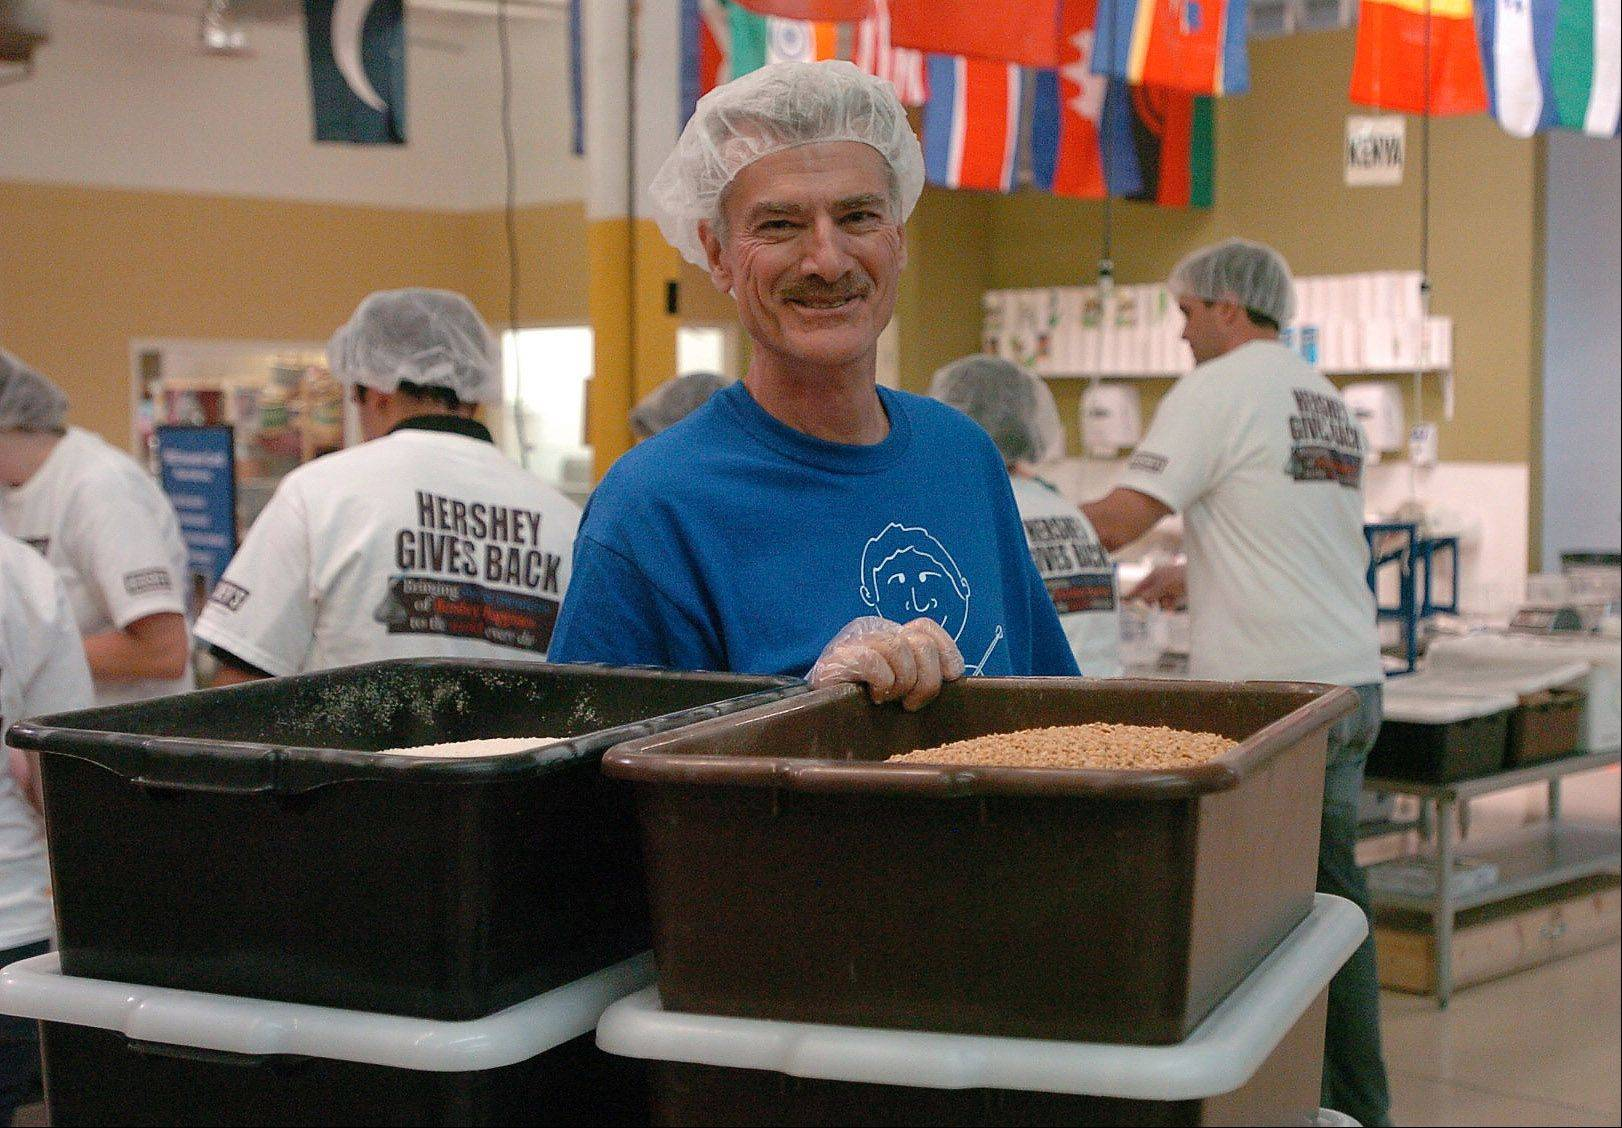 Direnzo enjoys volunteering at Feed My Starving Children.